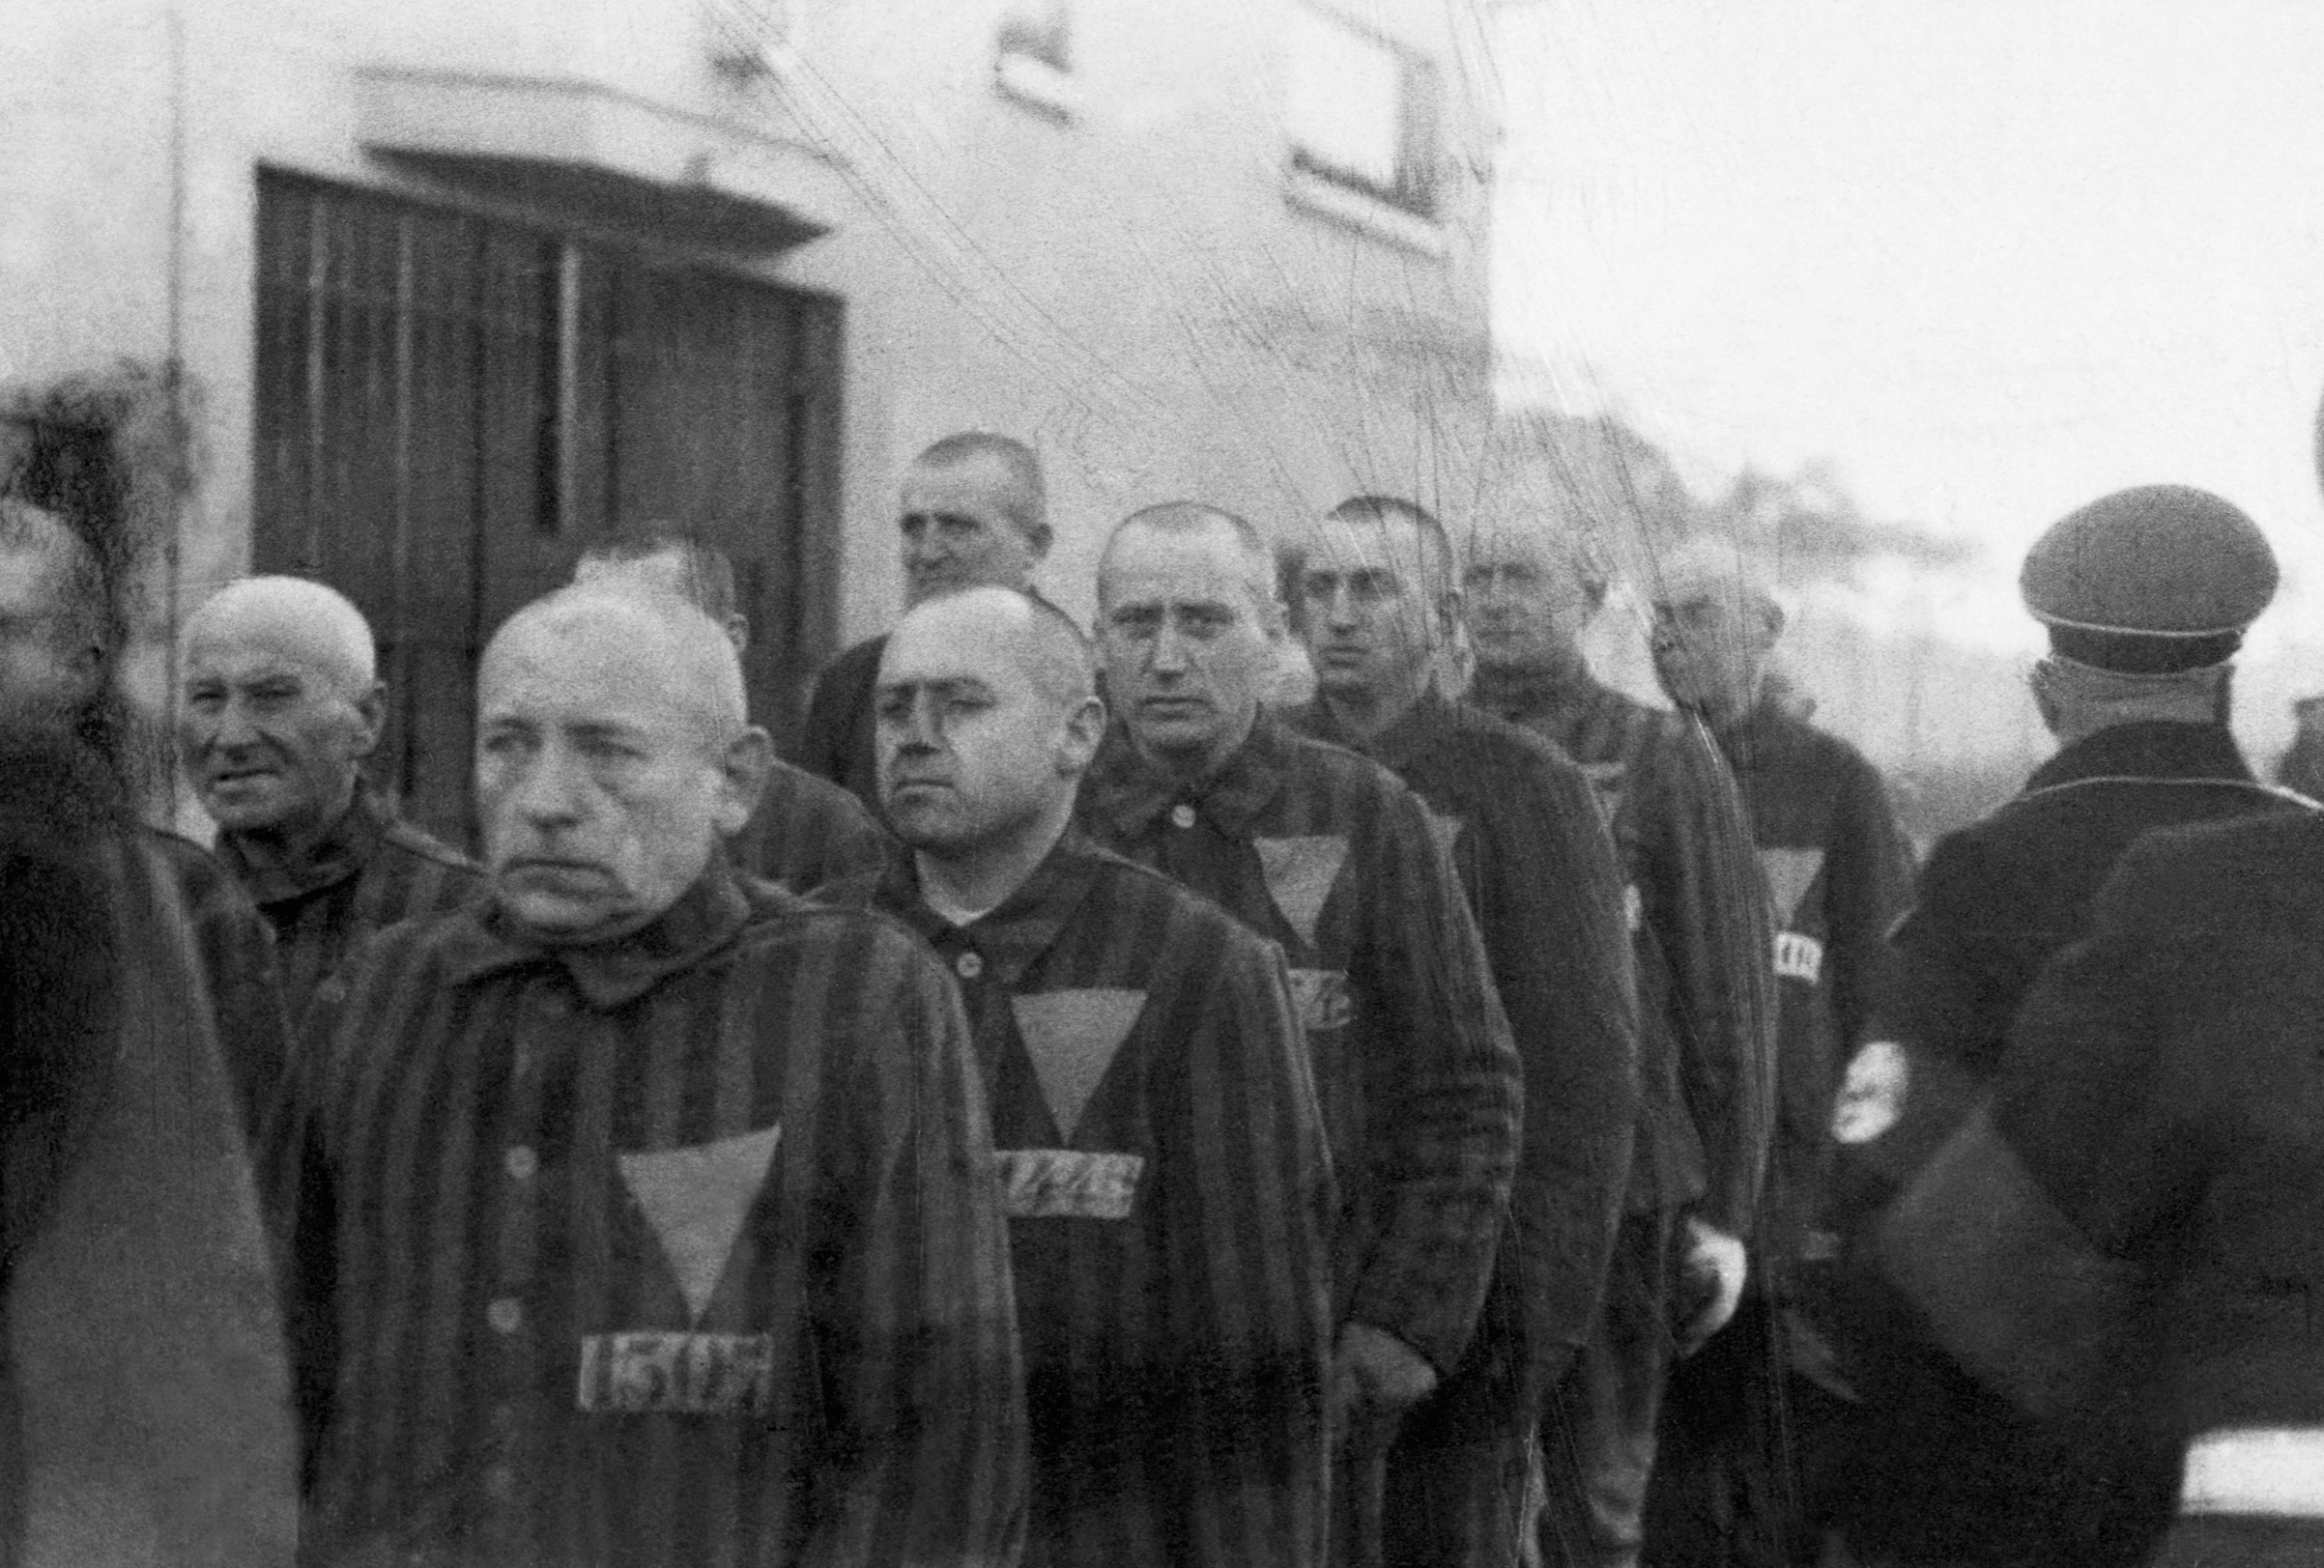 Prisoners wearing pink triangles on their uniforms are marched outdoors by Nazi guards at the Sachsenhausen concentration camp in Germany on Dec. 19, 1938.